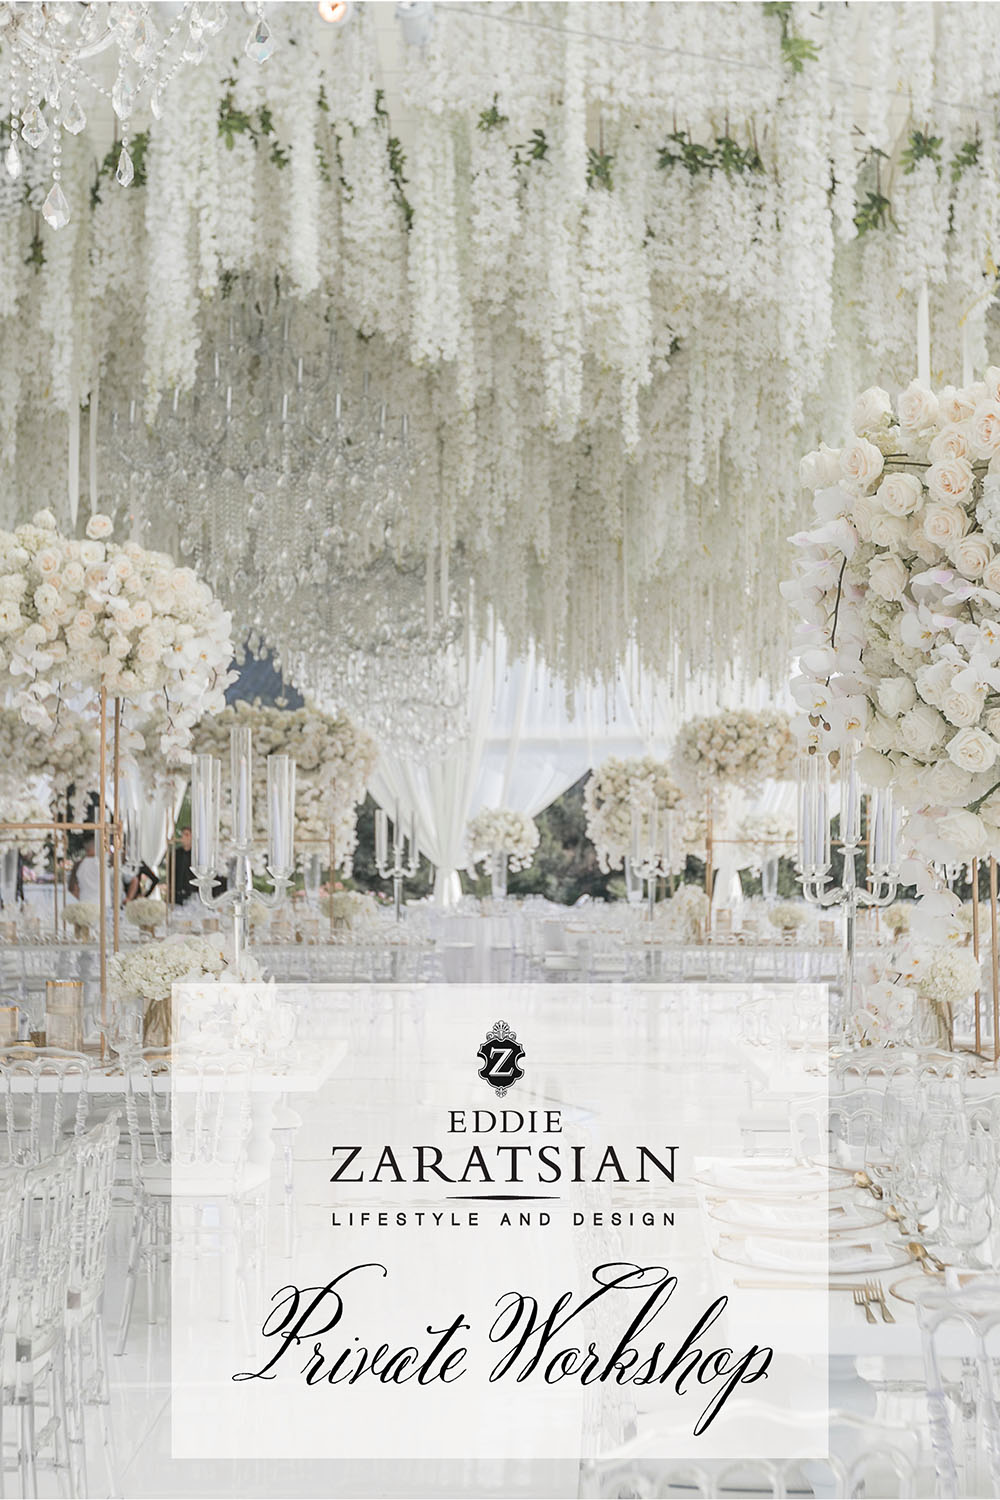 Eddie Zaratsian Floral Design - Photo by Callaway Gable Photography for Junebug Weddings